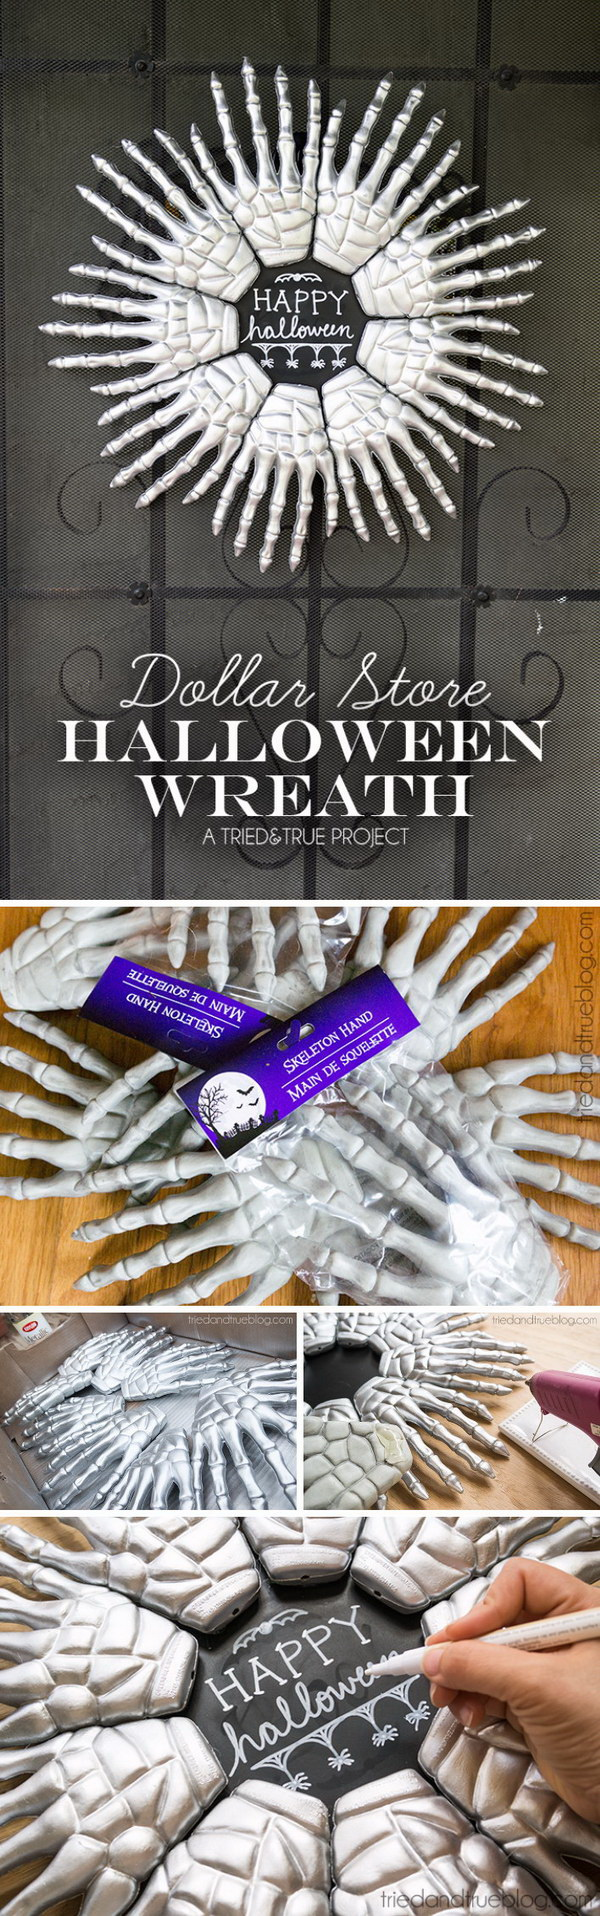 Dollar Store Halloween Wreath.